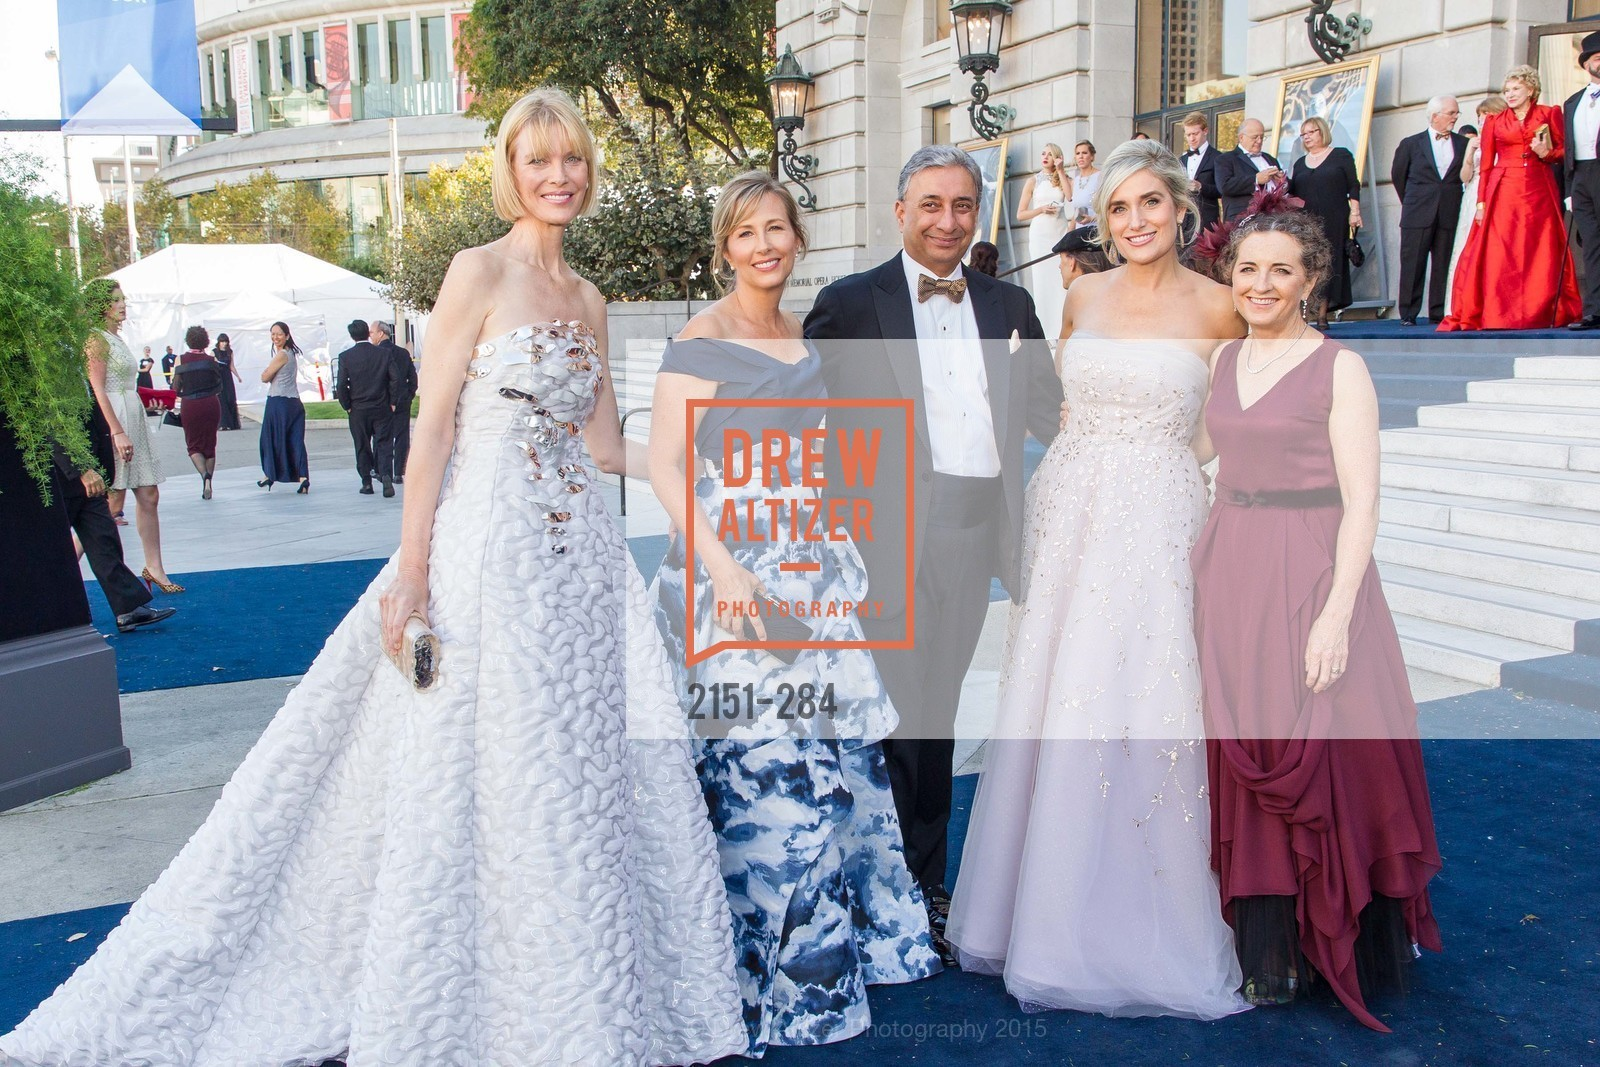 Karen Richardson, Debbie Muller, Raj Singh, Renata Anderson, Sarah Ratchye, Opera Ball 2015: Moonlight & Music, War Memorial Opera House. 301 Van Ness Ave, September 11th, 2015,Drew Altizer, Drew Altizer Photography, full-service agency, private events, San Francisco photographer, photographer california